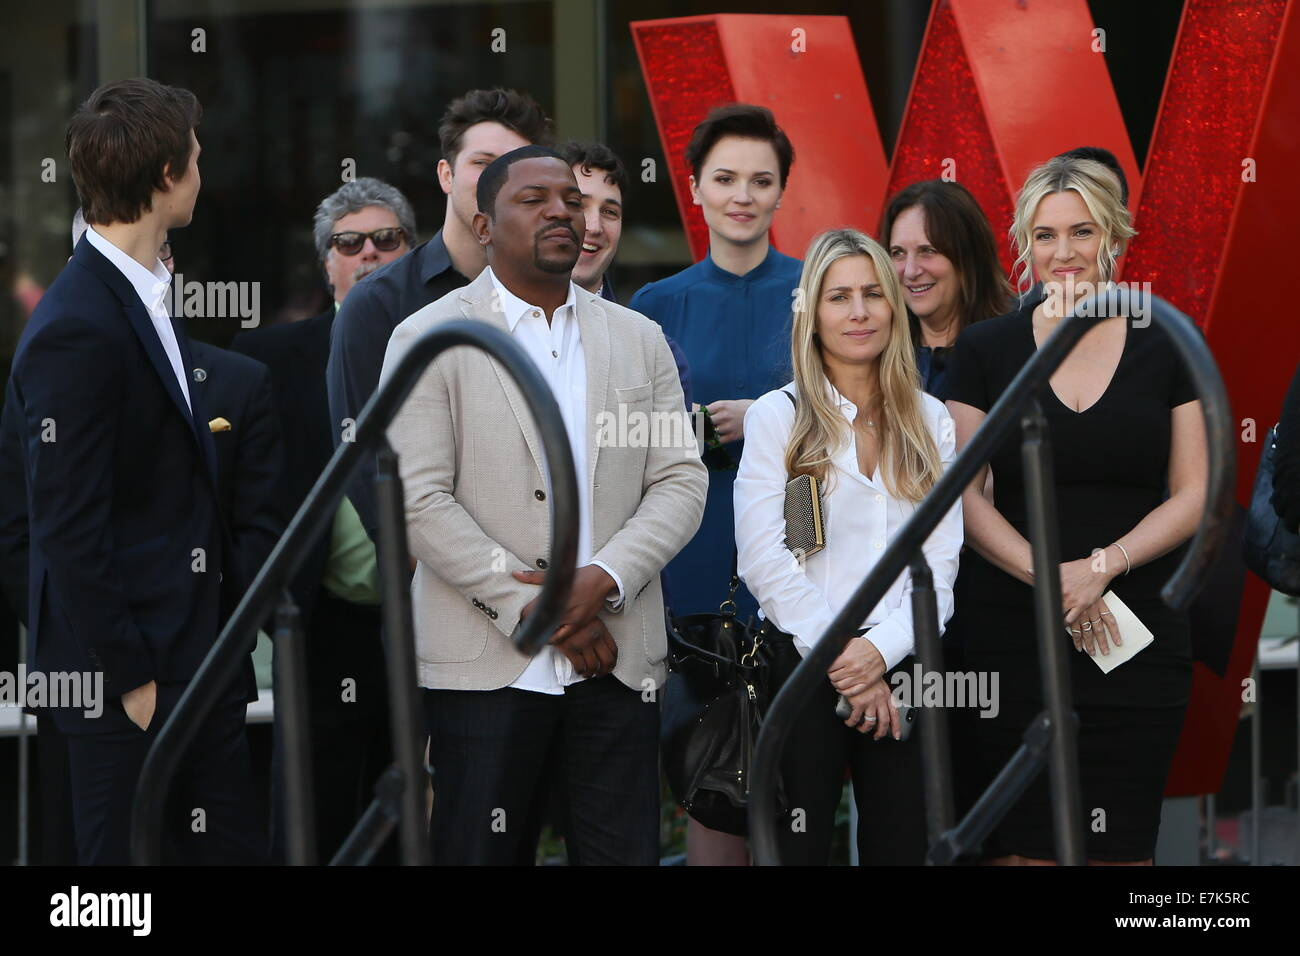 Kate Winslet seen with the cast of her new movie Divergent who came